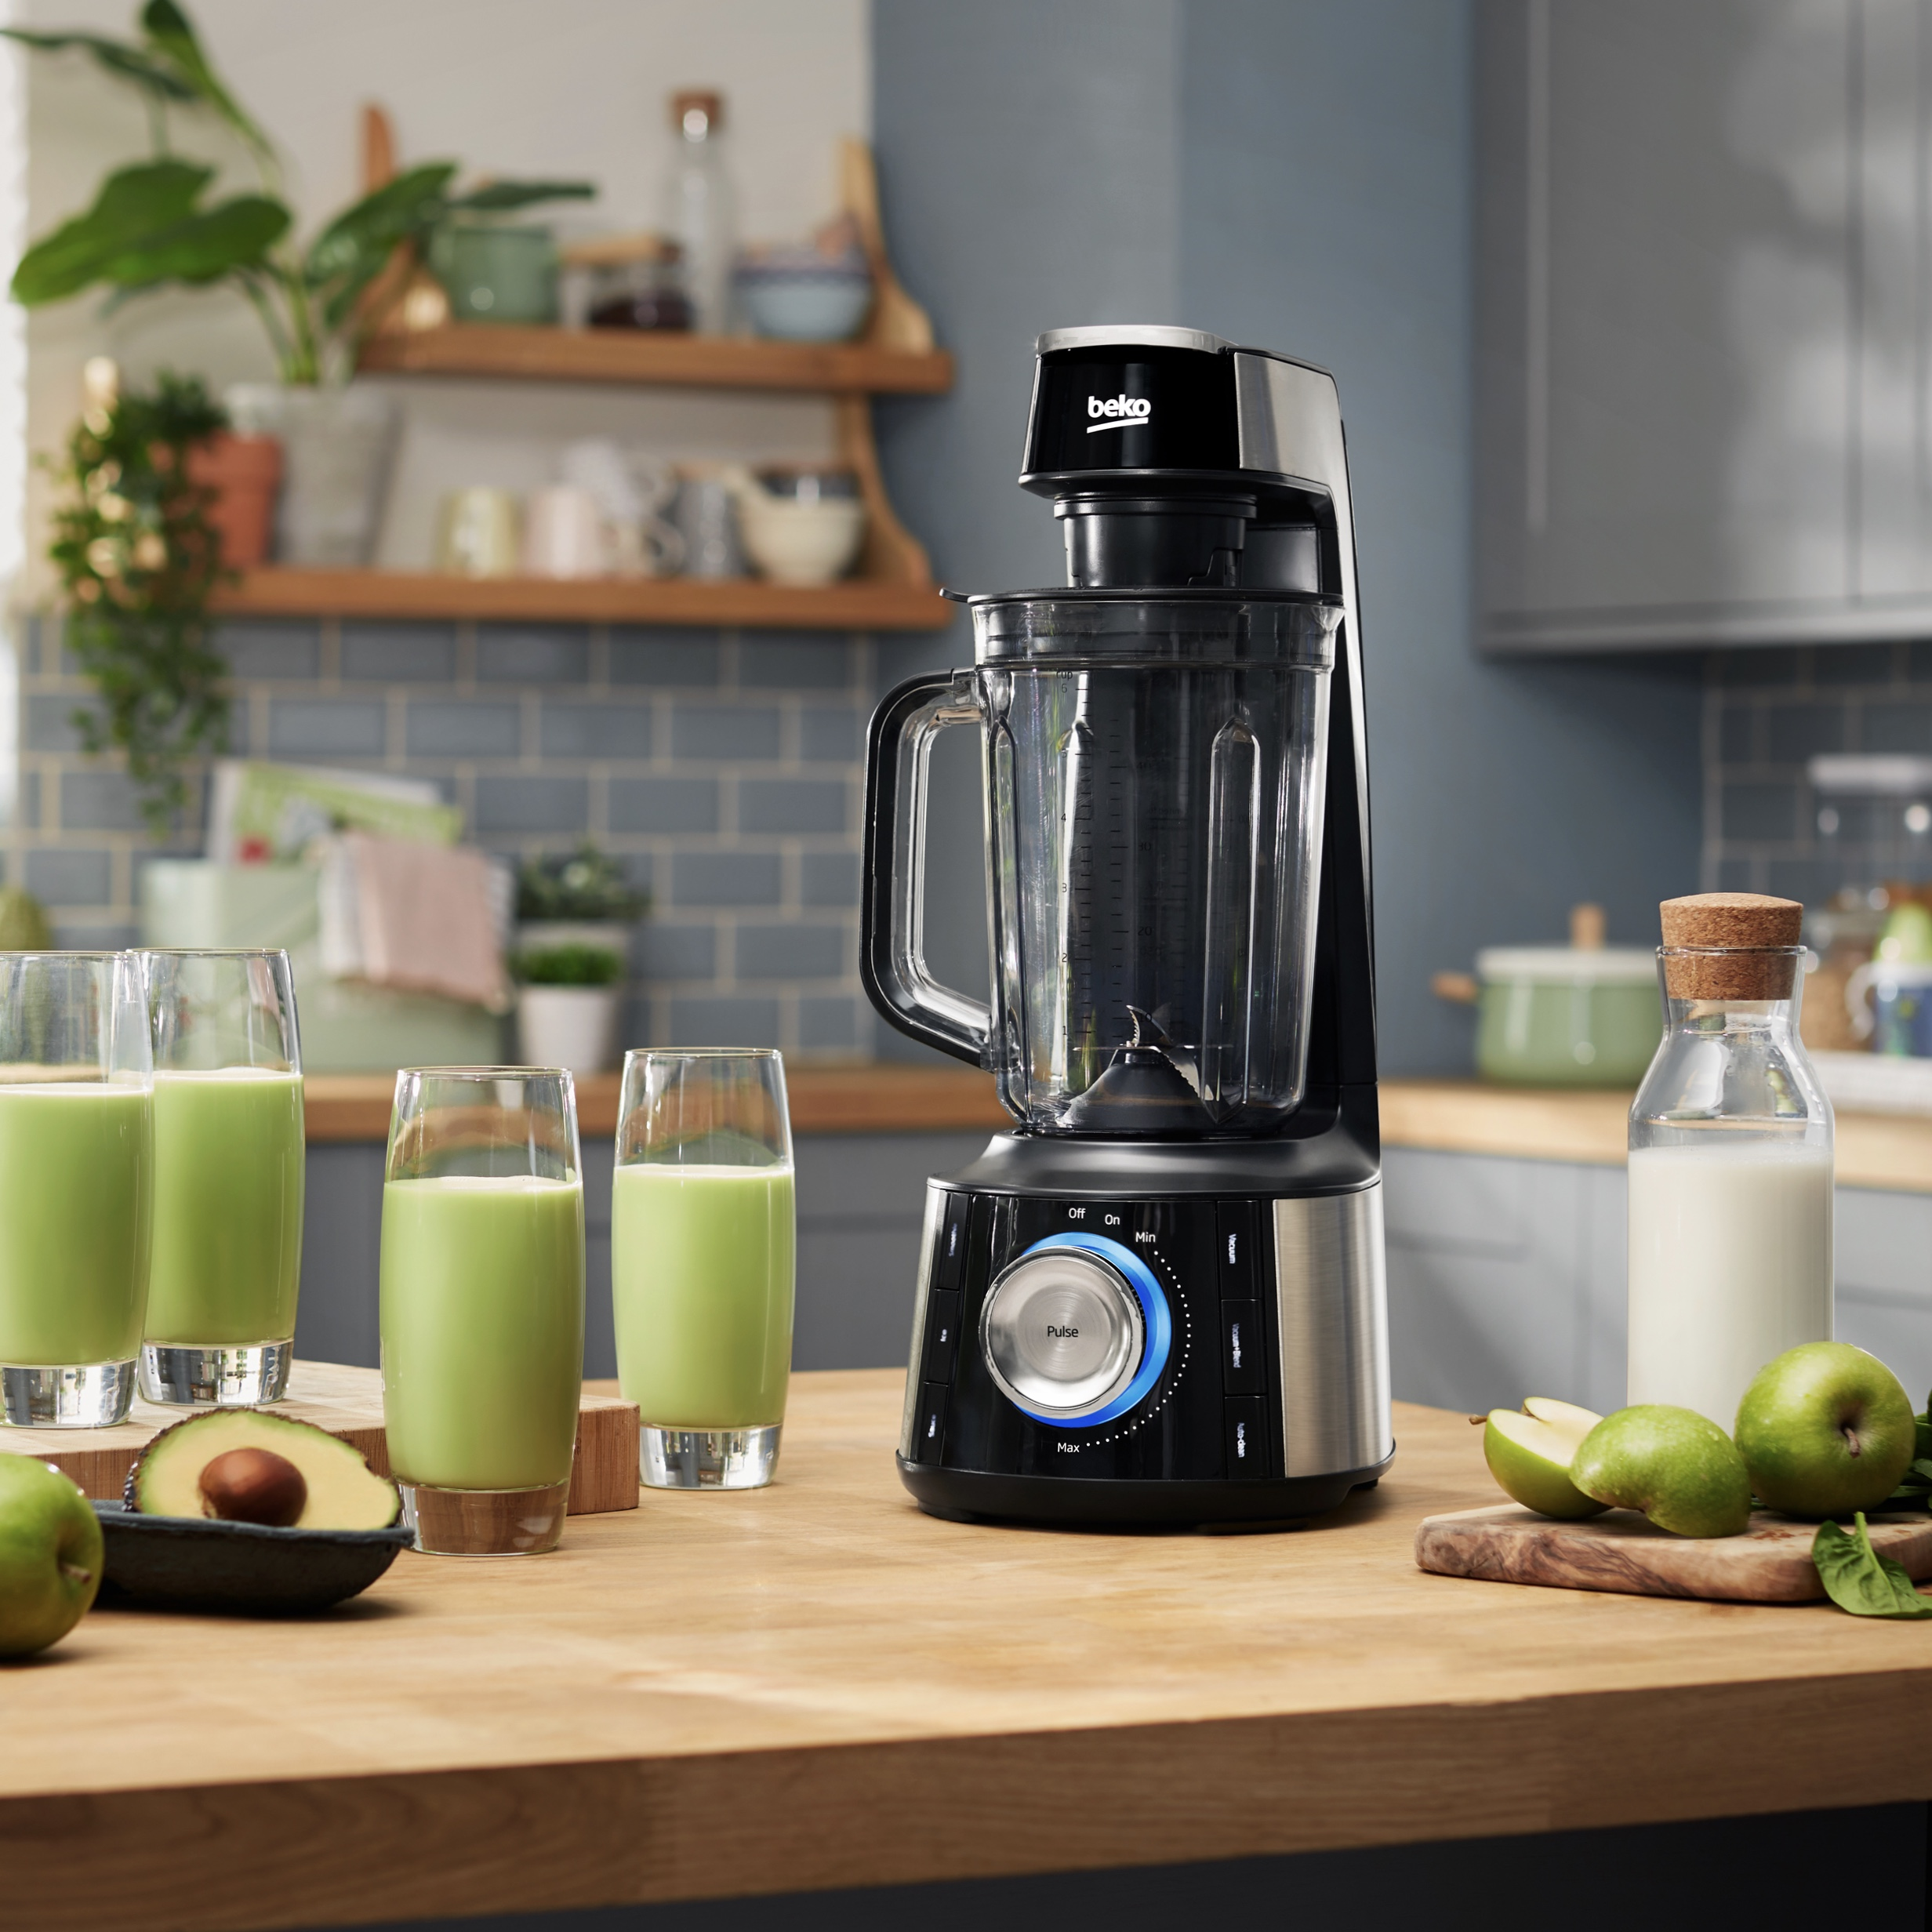 Eat Like A Pro with Beko - A Pretty Place to Play